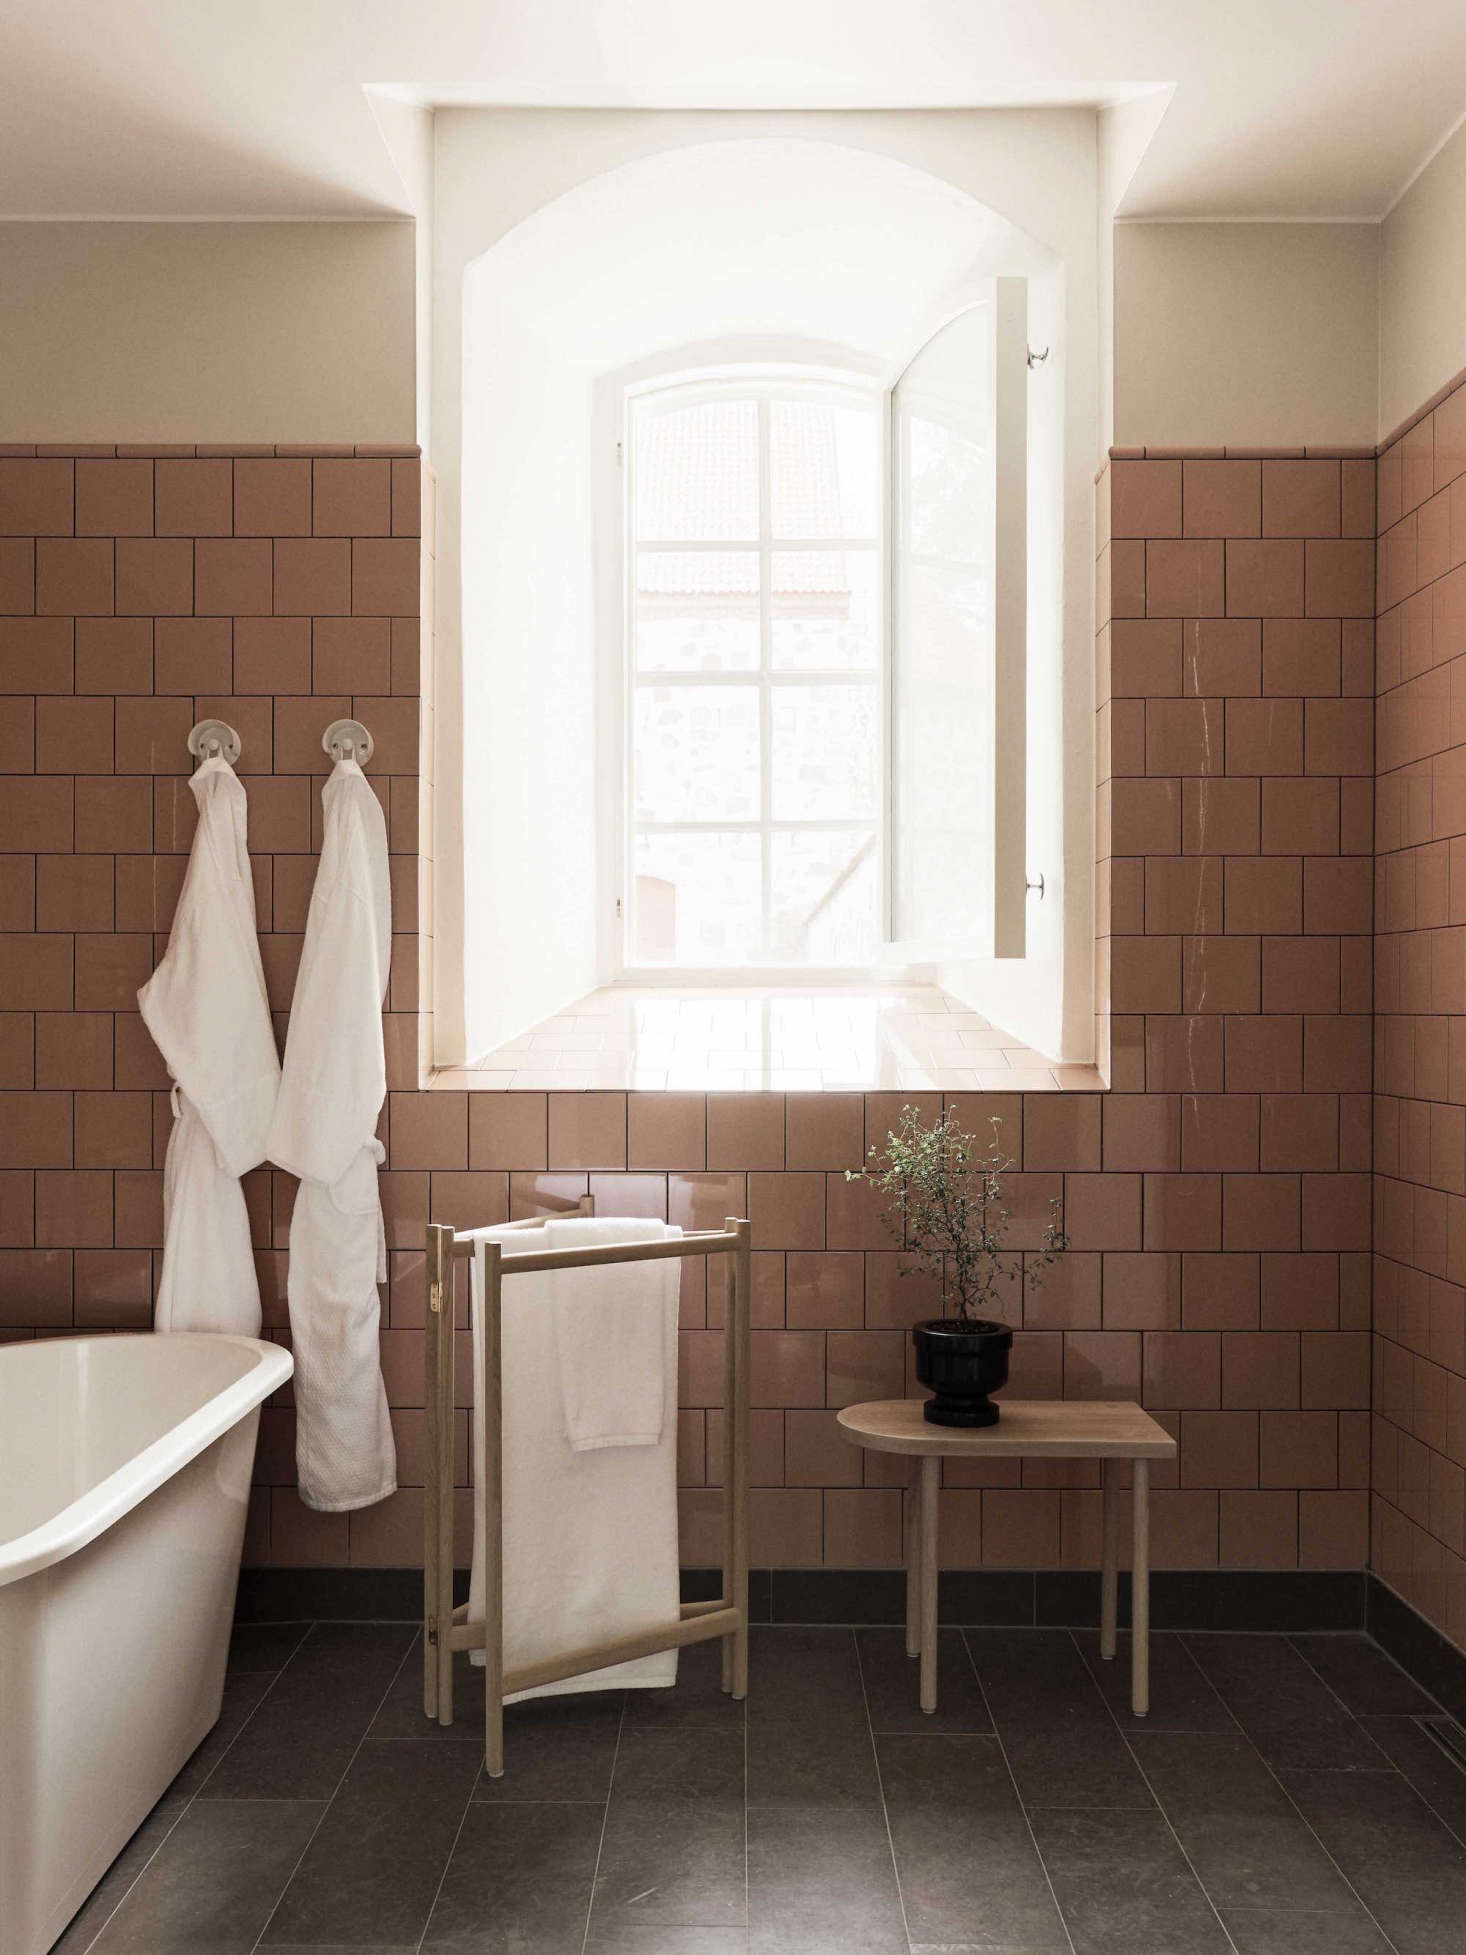 Retro-inspired bathroom tile (such as the Health tile used in Katie Lockhart's Auckland project) and just plain retro tile (like the vintage pink tile at Hotel Wanås in Skåne, Sweden, shown) is an emerging trend. Start scouring your local architectural salvage now.